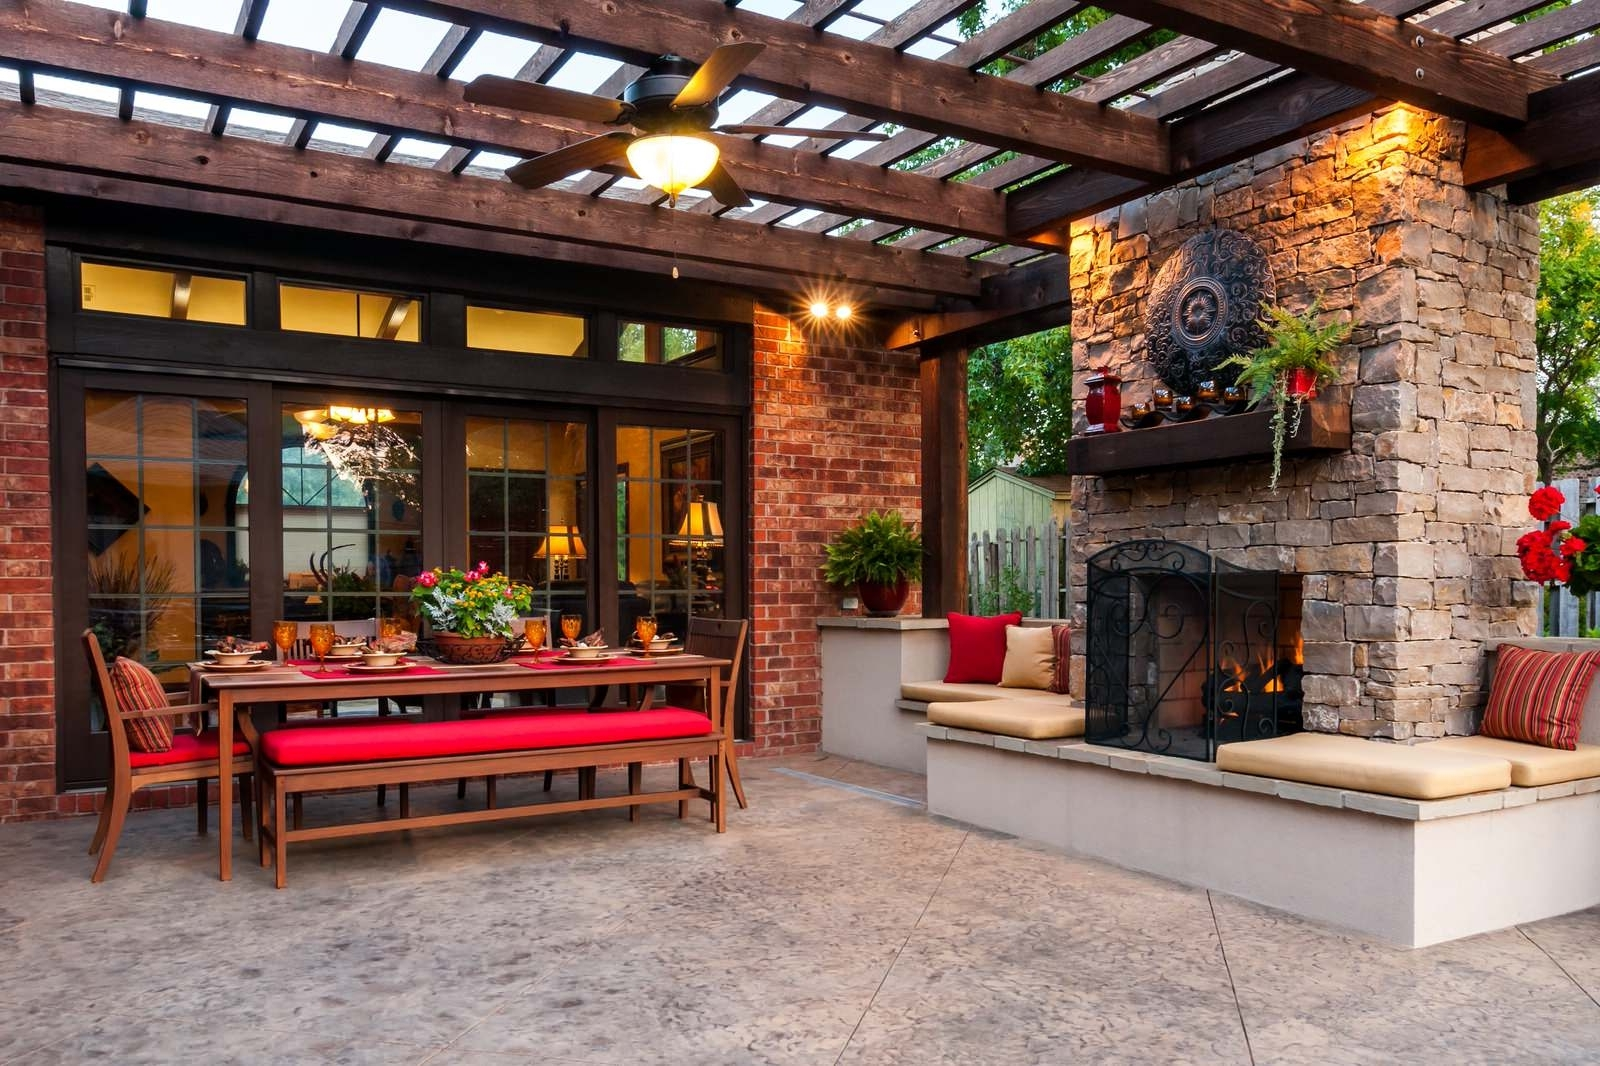 Outdoor Deck Ceiling Lights With Favorite Outdoor Porch Ceiling Lights (View 6 of 20)